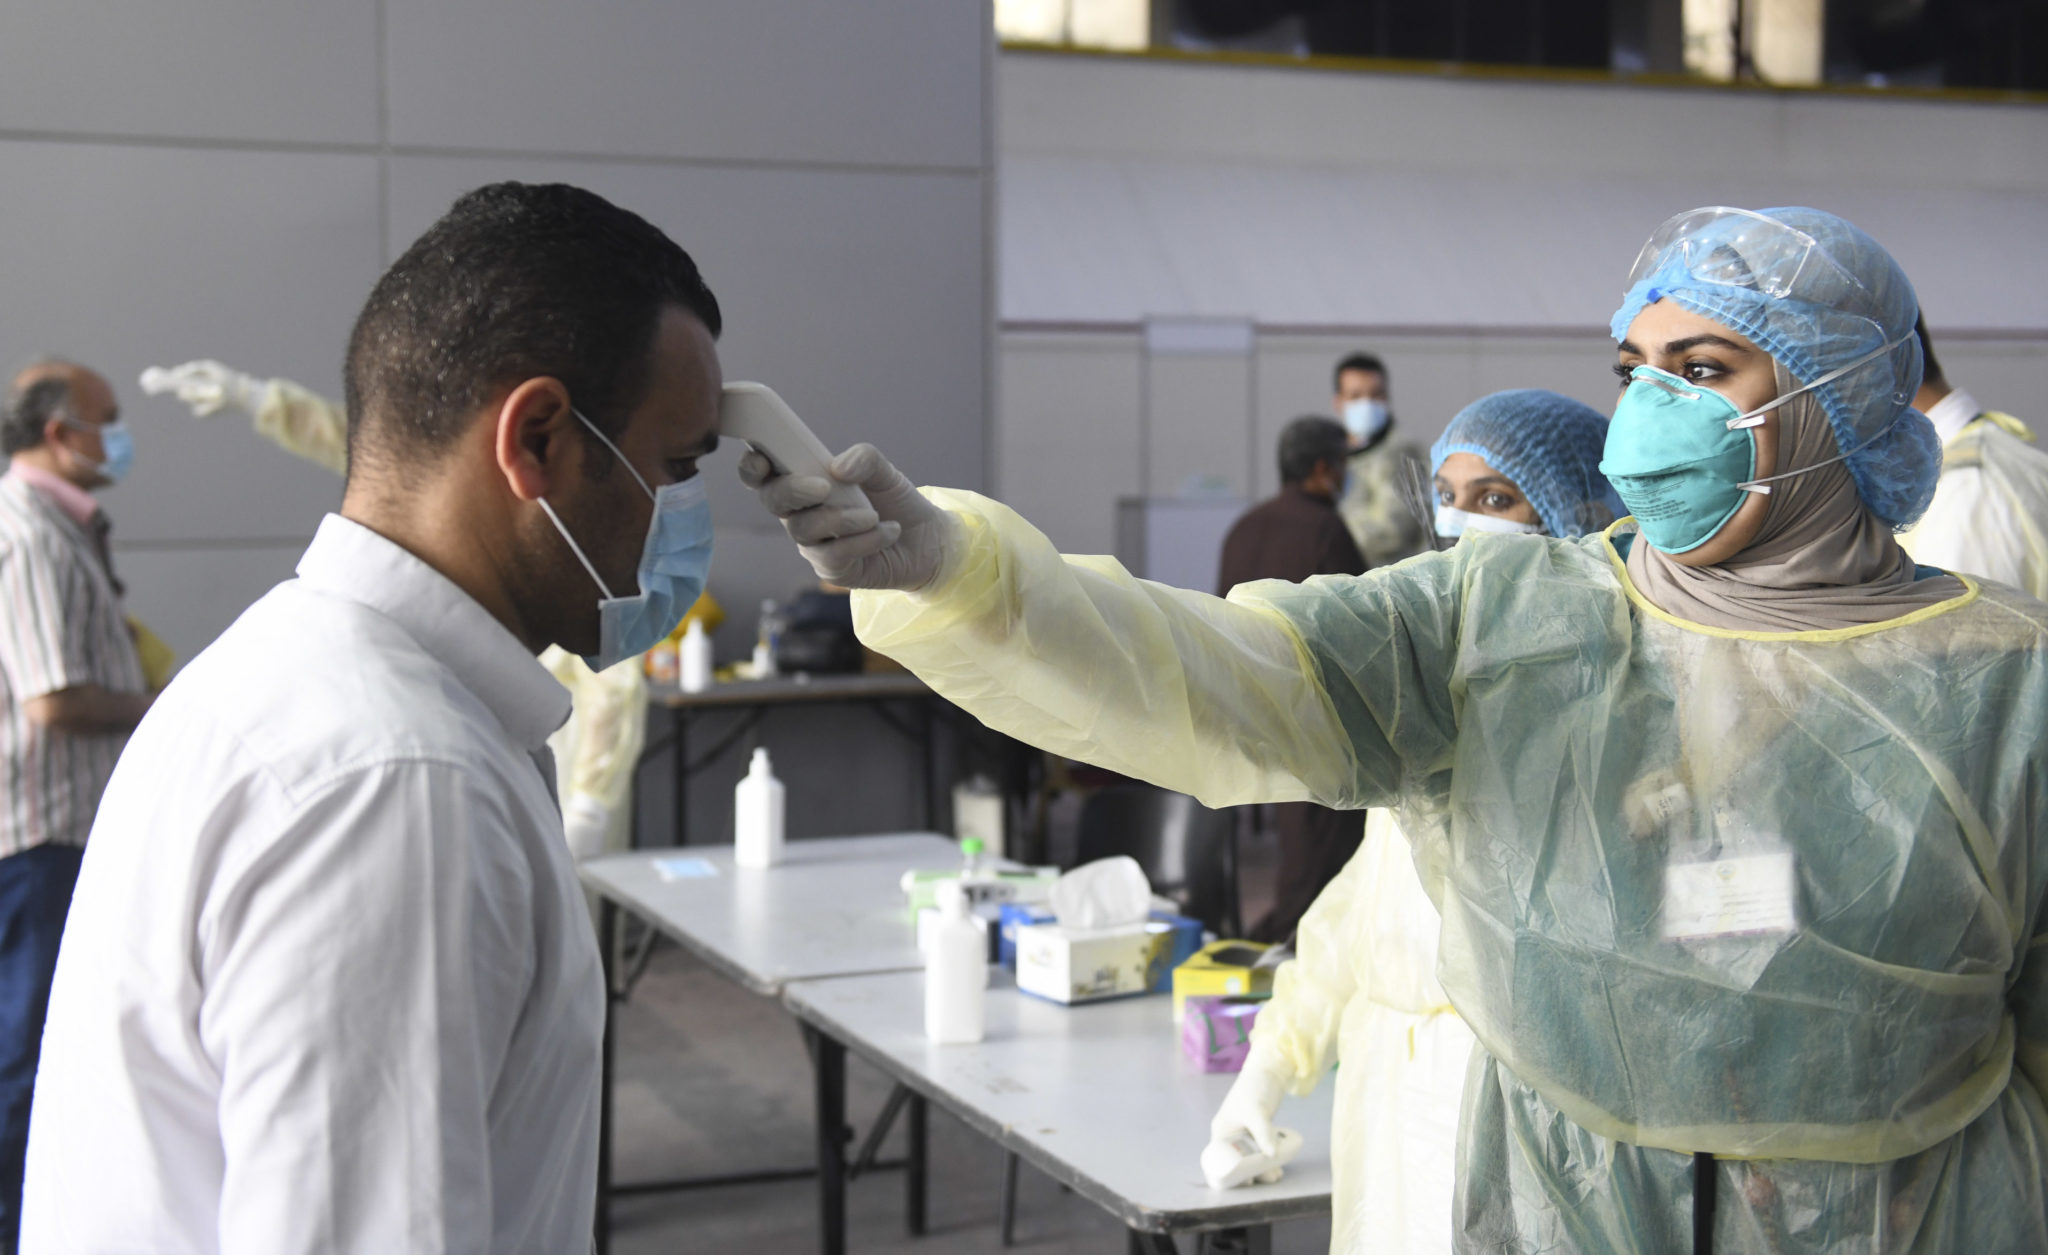 After the Pandemic: Reimagining the Role of State and Non-State Actors in (Re)building National Health Systems in the Arab World